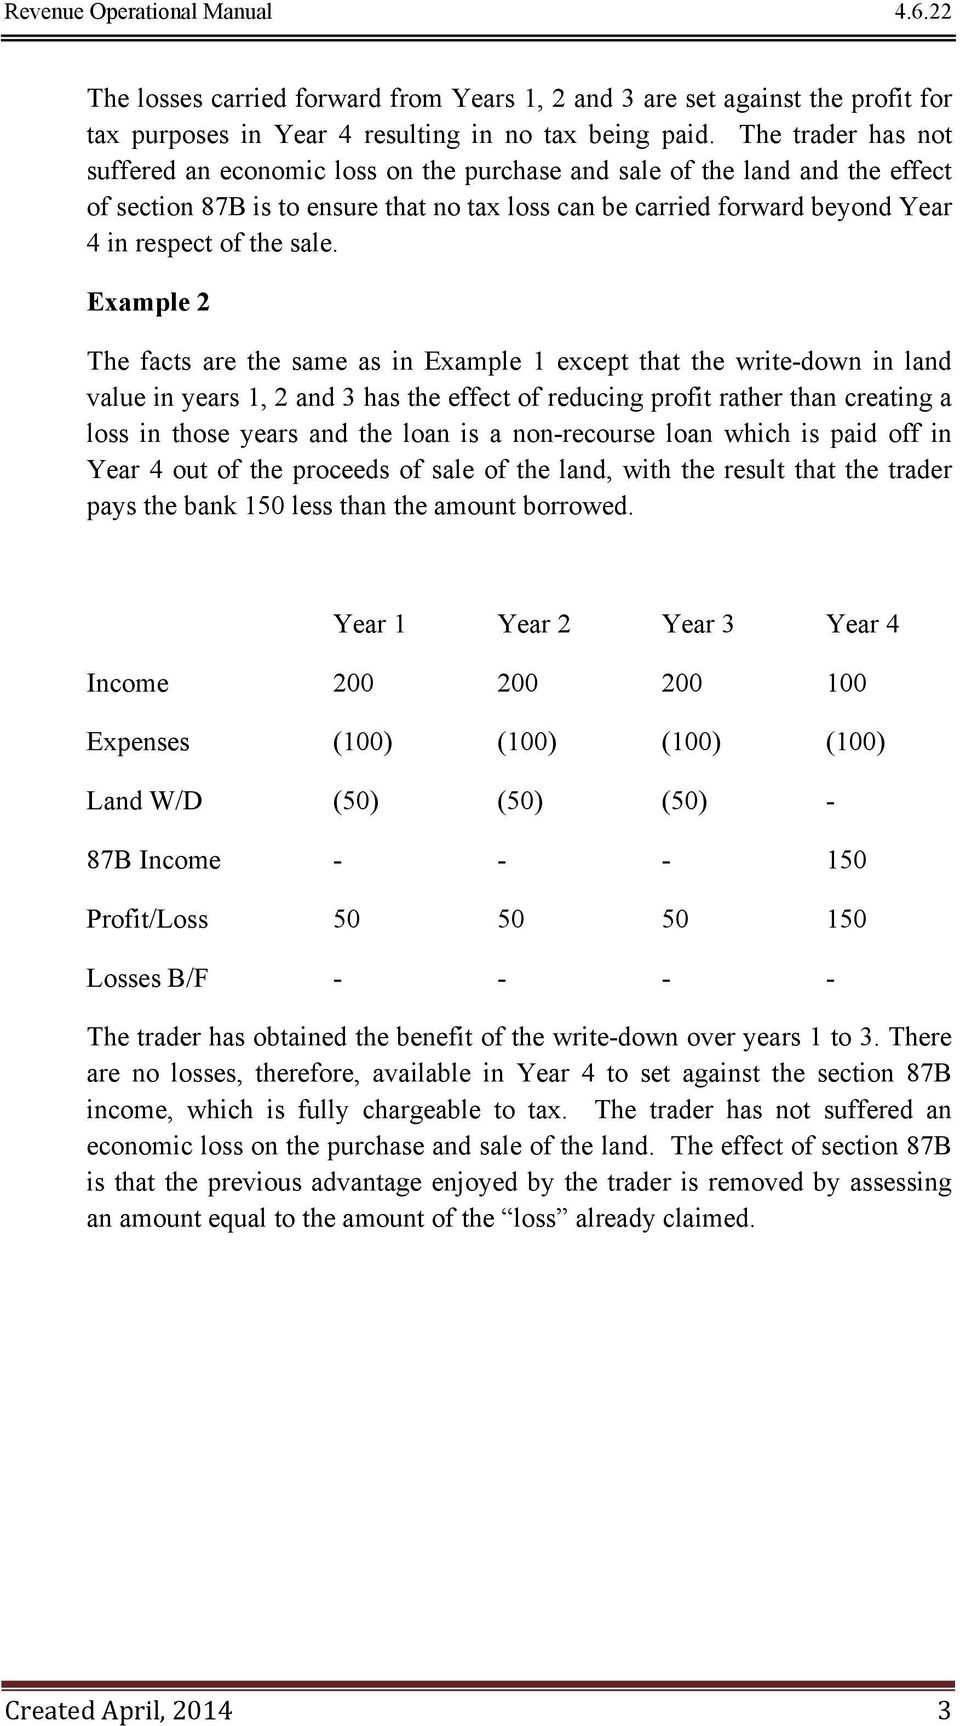 sale. Example 2 The facts are the same as in Example 1 except that the write-down in land value in years 1, 2 and 3 has the effect of reducing profit rather than creating a loss in those years and